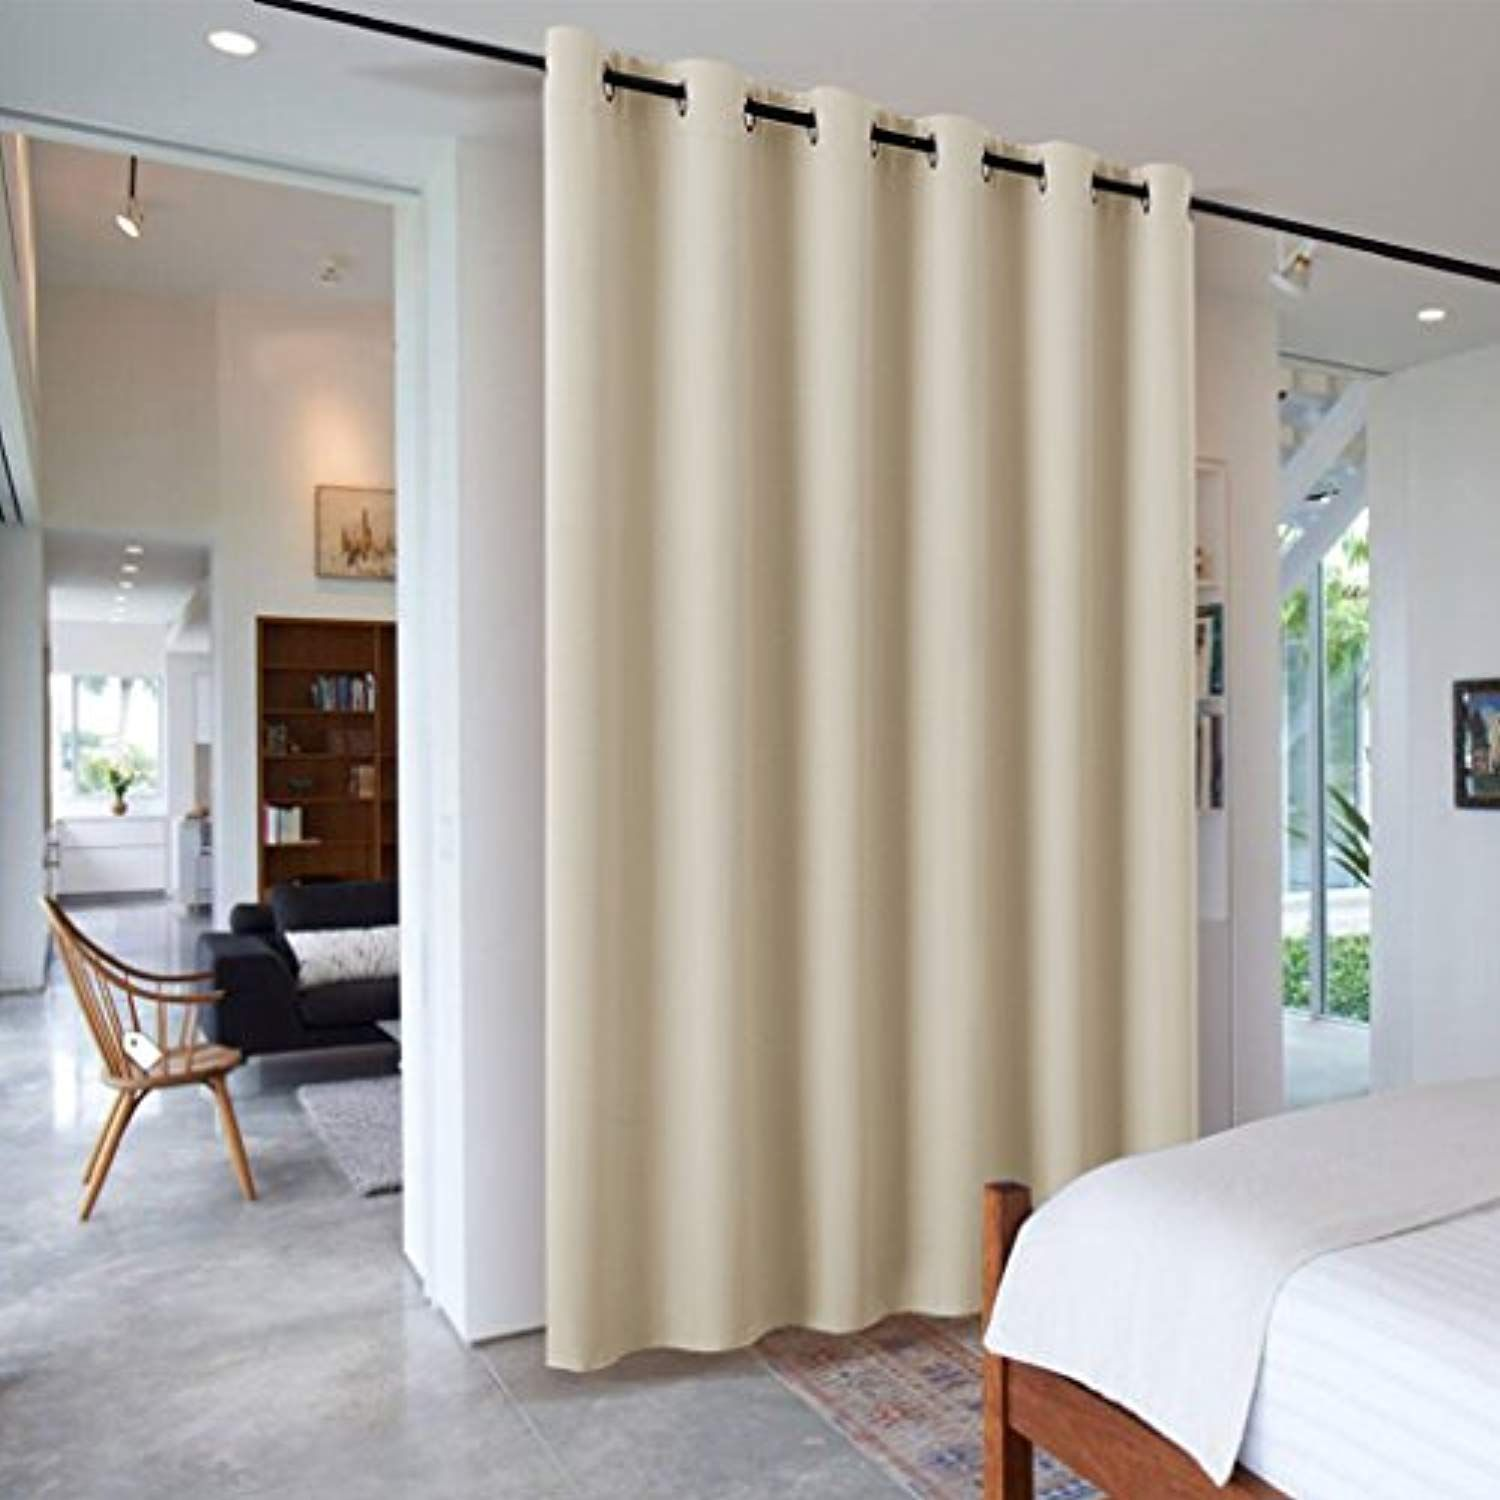 Portable Blackout Decorative Room Divider Ryb Home Extra Long Wide Privacy Shared Curtain For Wor Room Divider Curtain Modern Room Divider Room Divider Walls